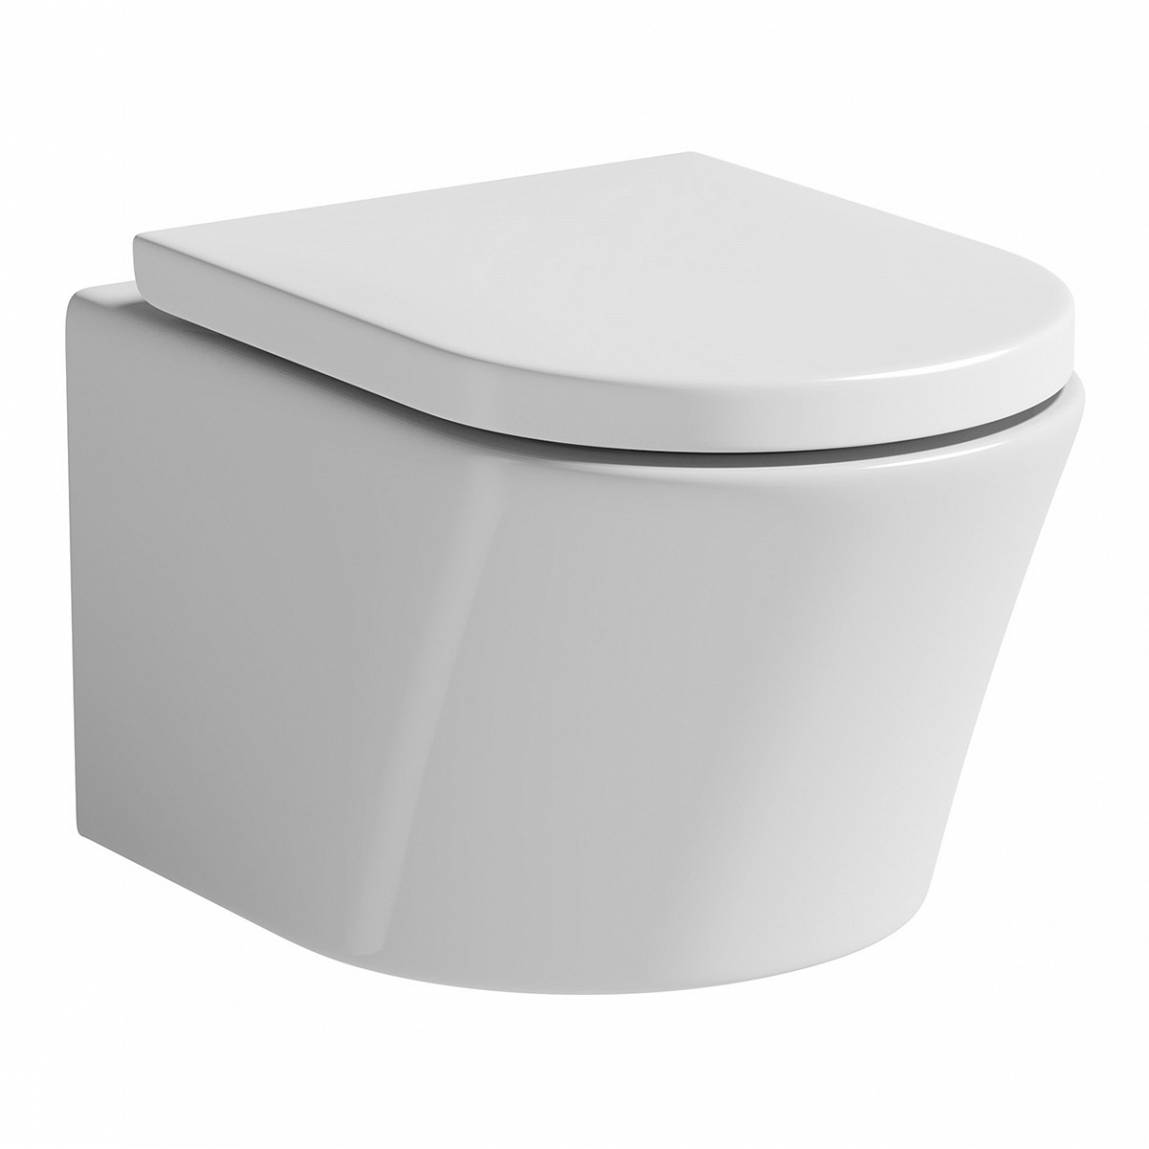 Image of Arc Wall Hung Toilet inc Seat